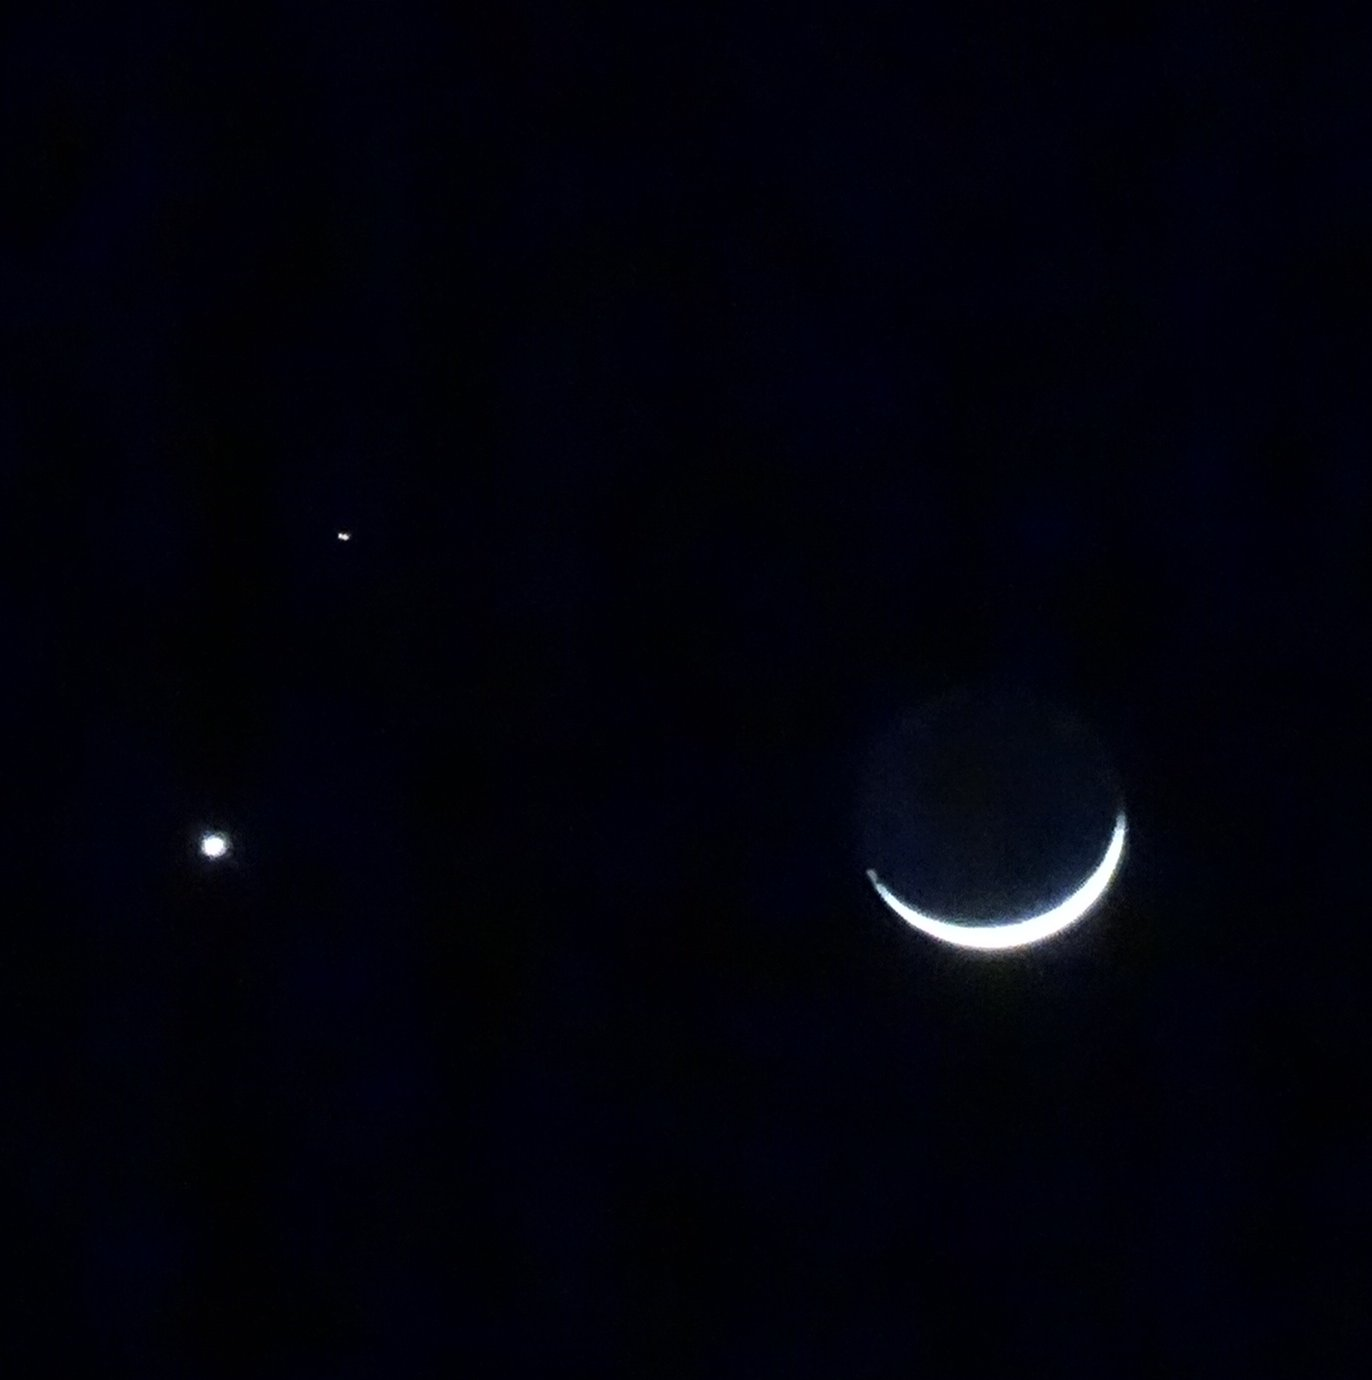 mars venus moon conjunction photos - photo #17